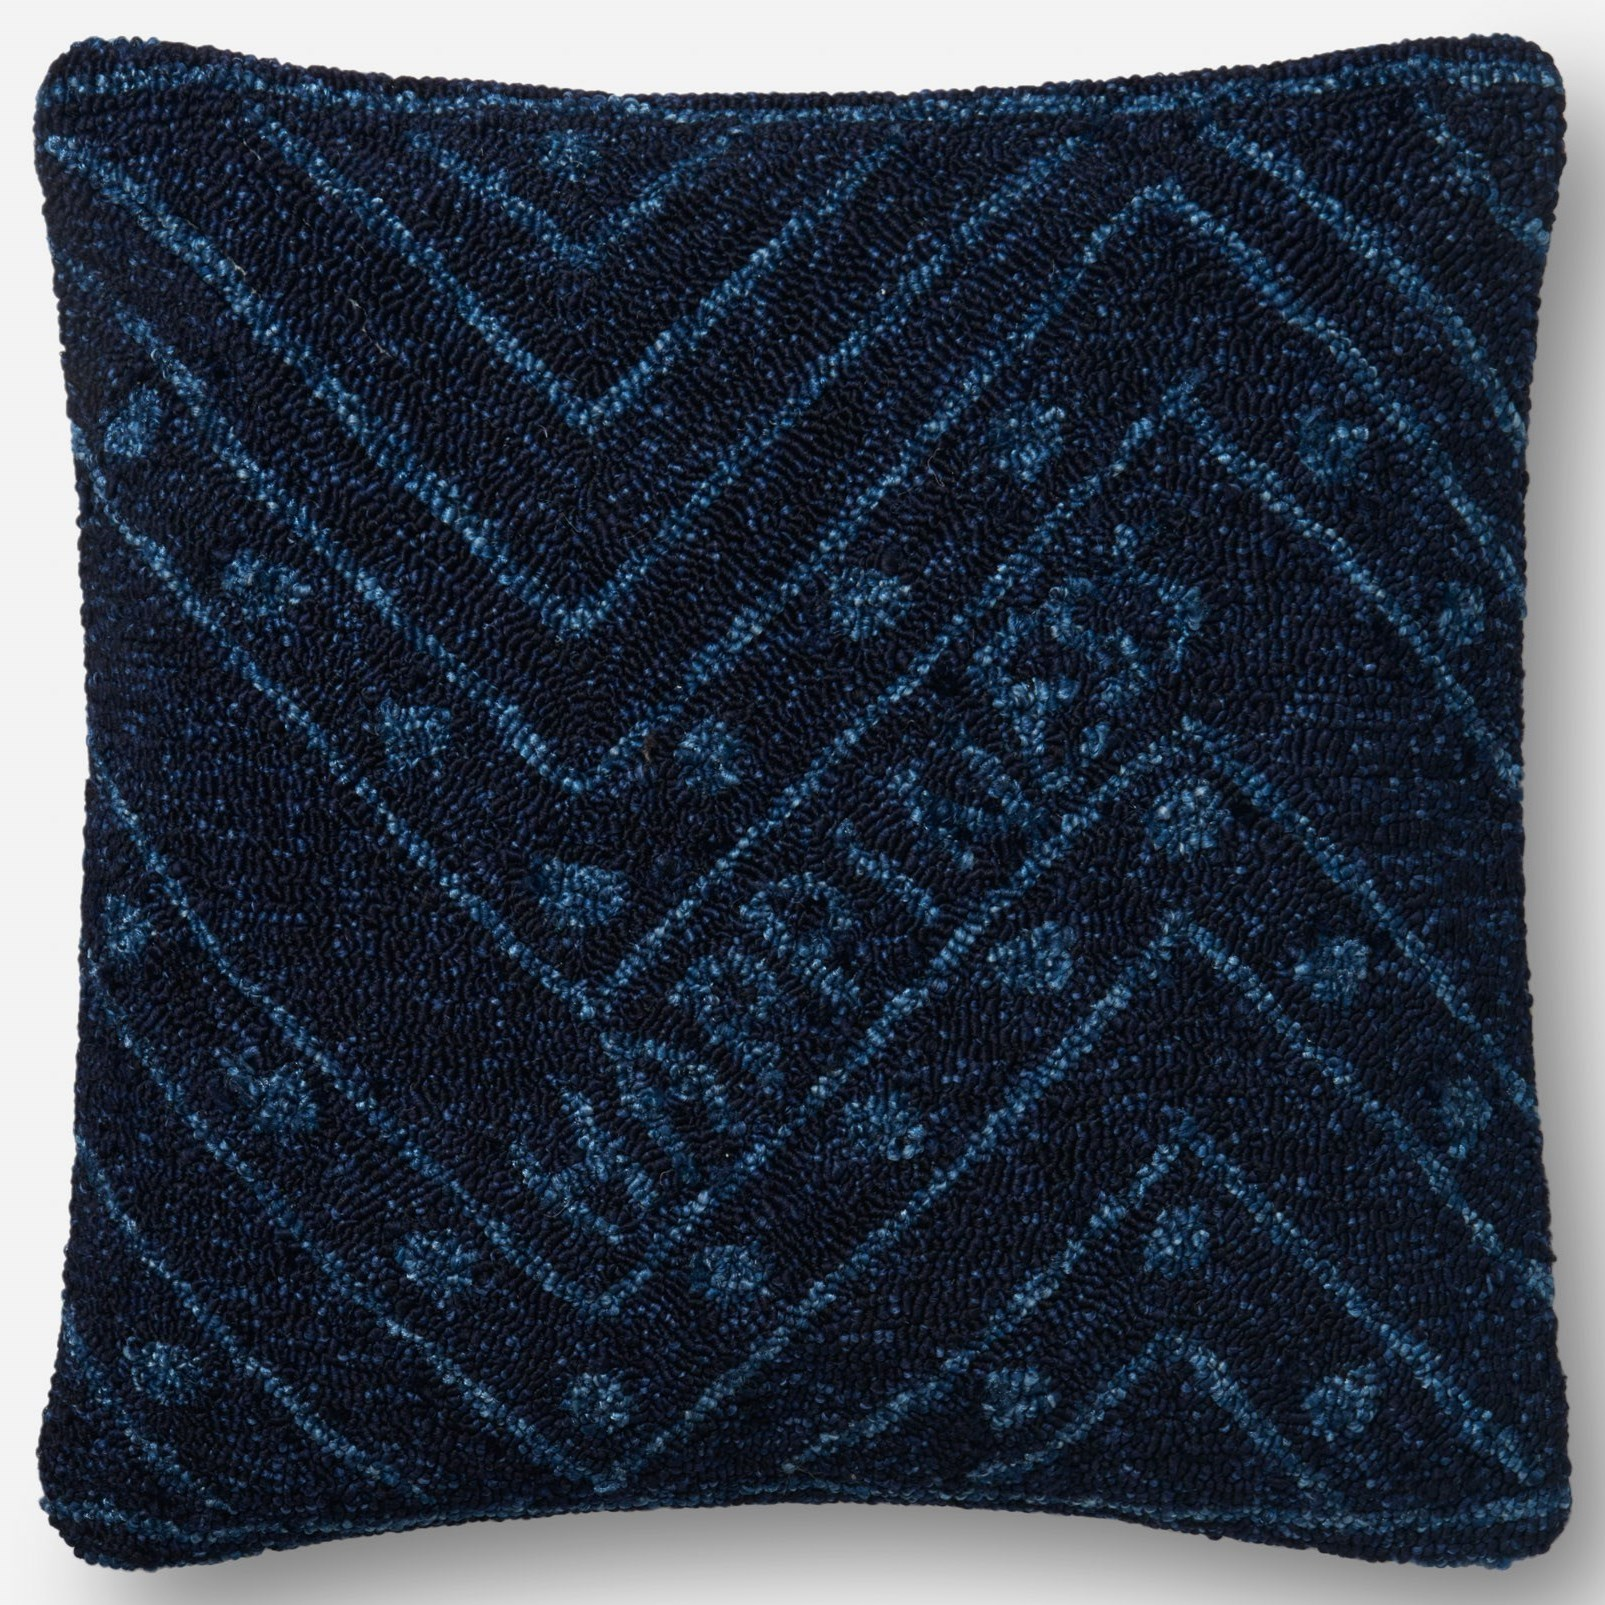 """22"""" X 22"""" Pillow Cover"""